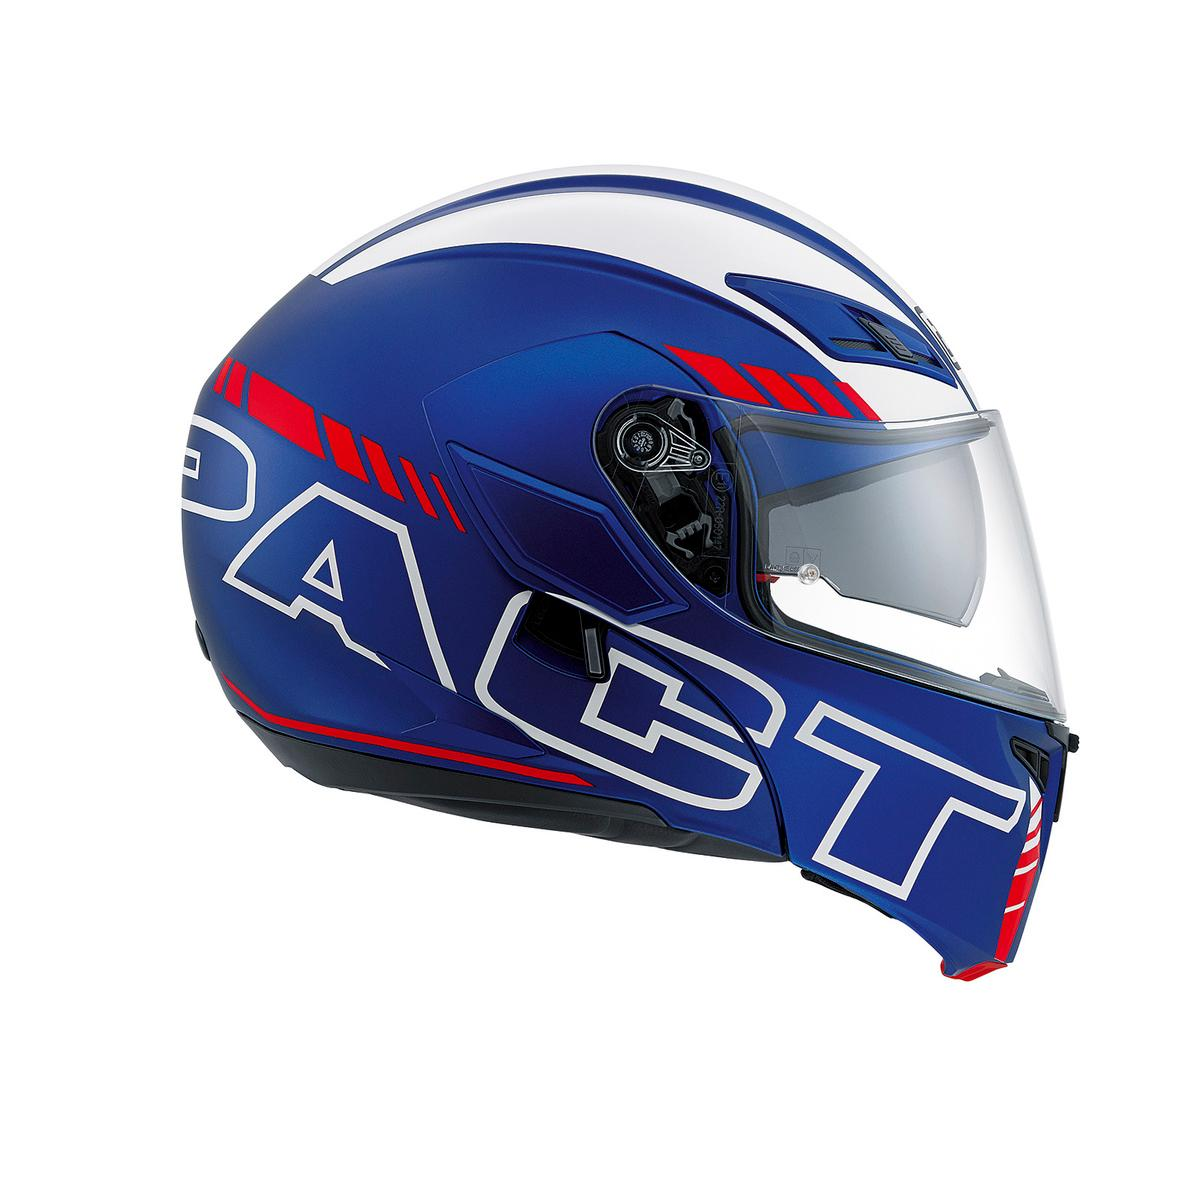 COMPACT ST E2205 MULTI  AGV  SEATTLE MATT BLUE/WHITE/RED